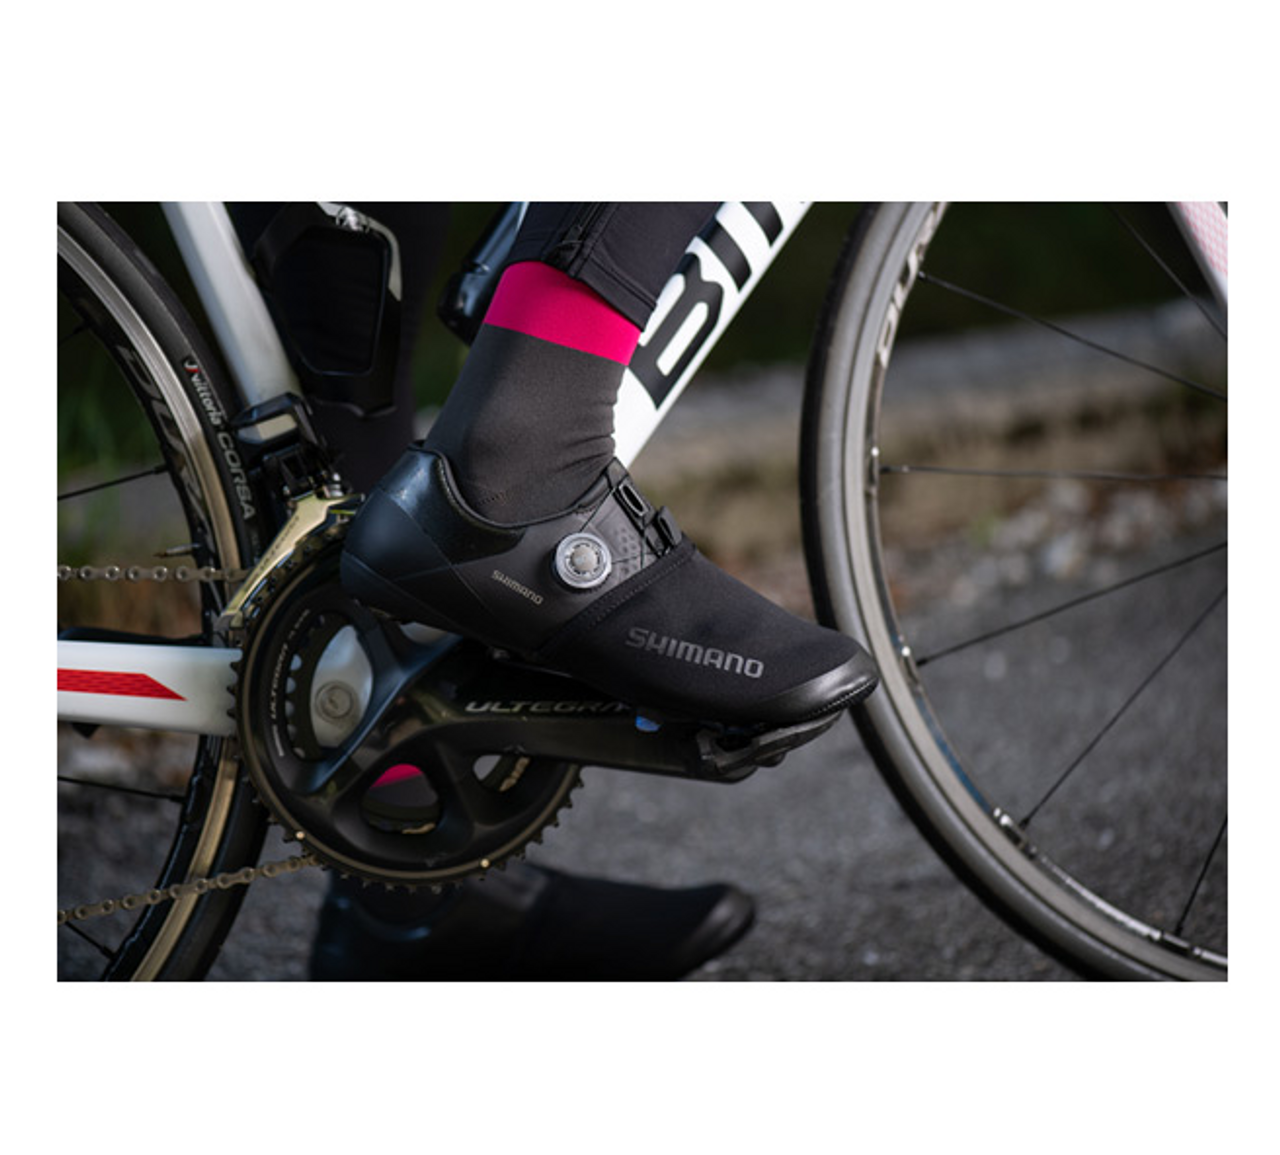 Shimano T1100R Road Toe Covers